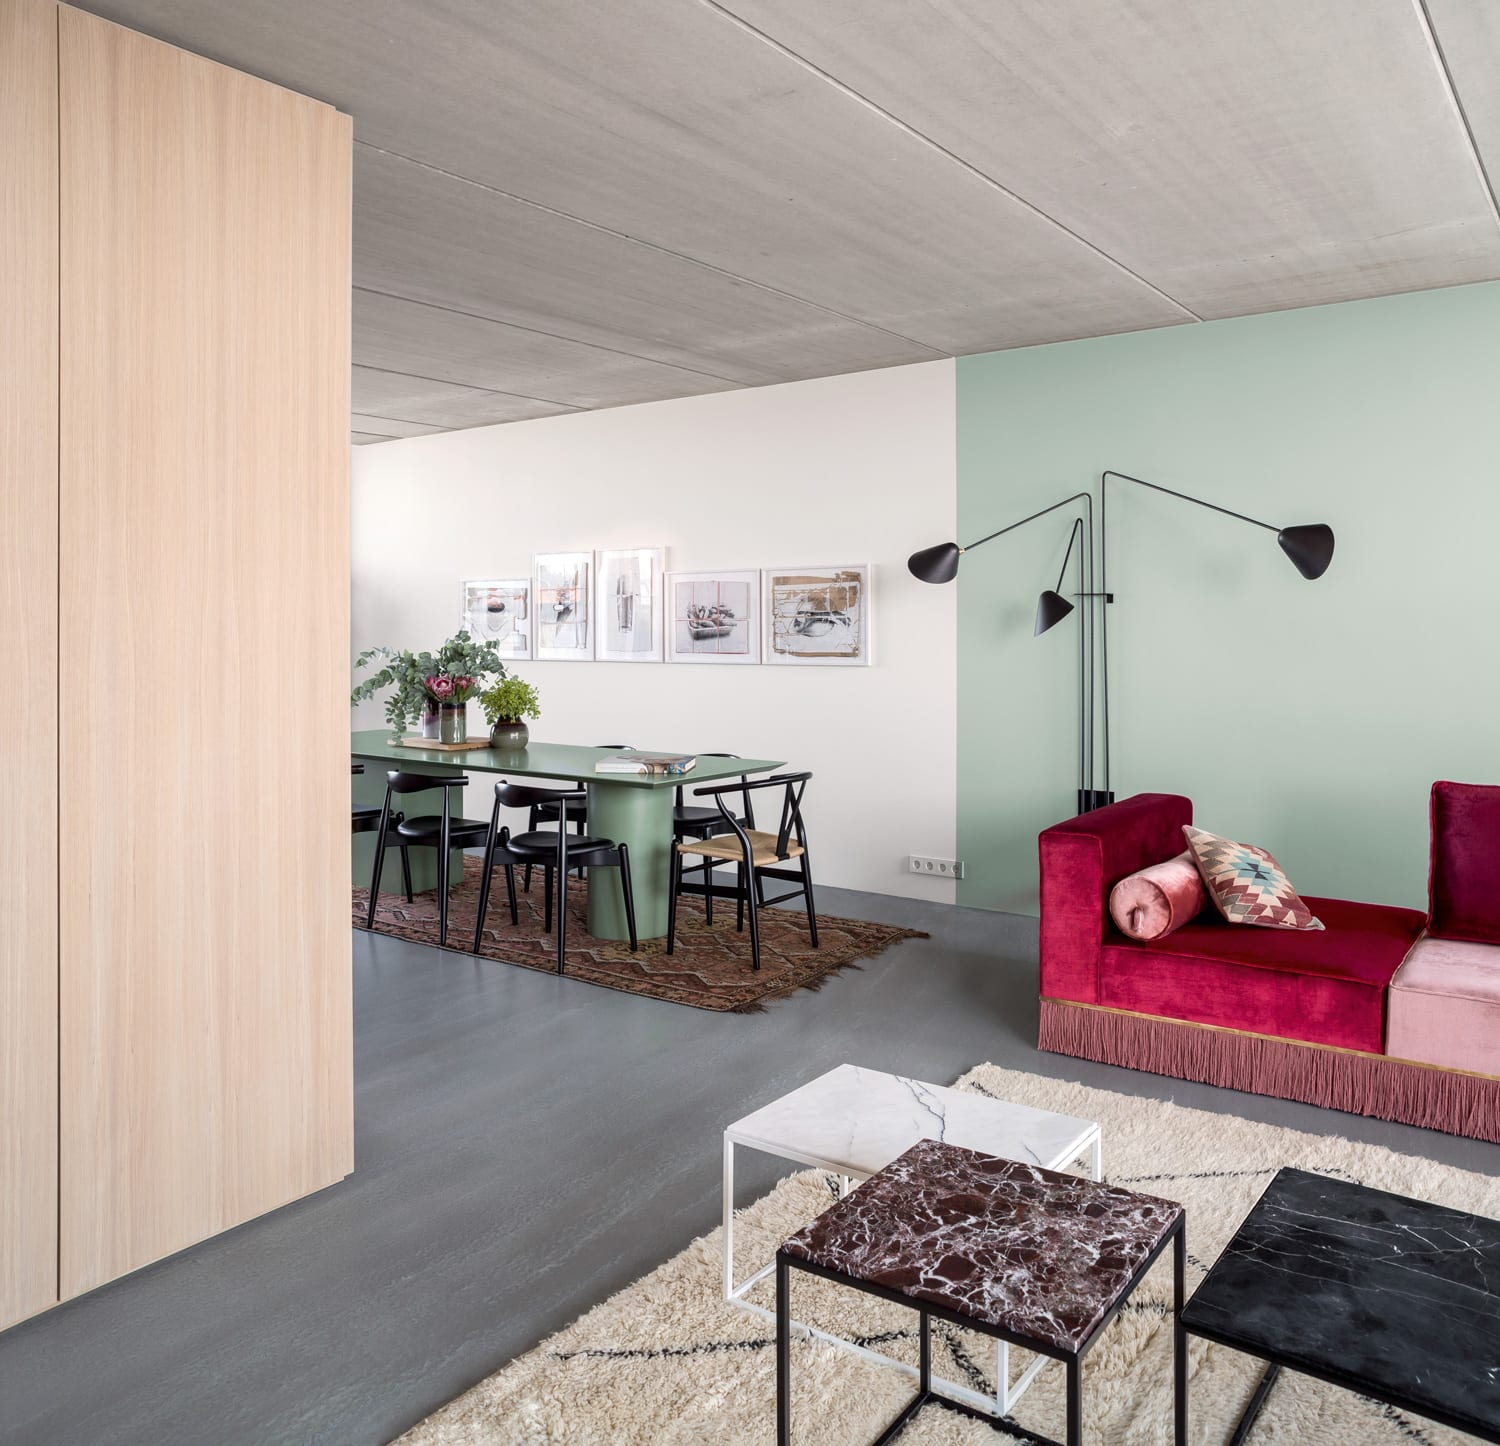 Ester Bruzkus' Own Converted Apartment In Berlin, Germany